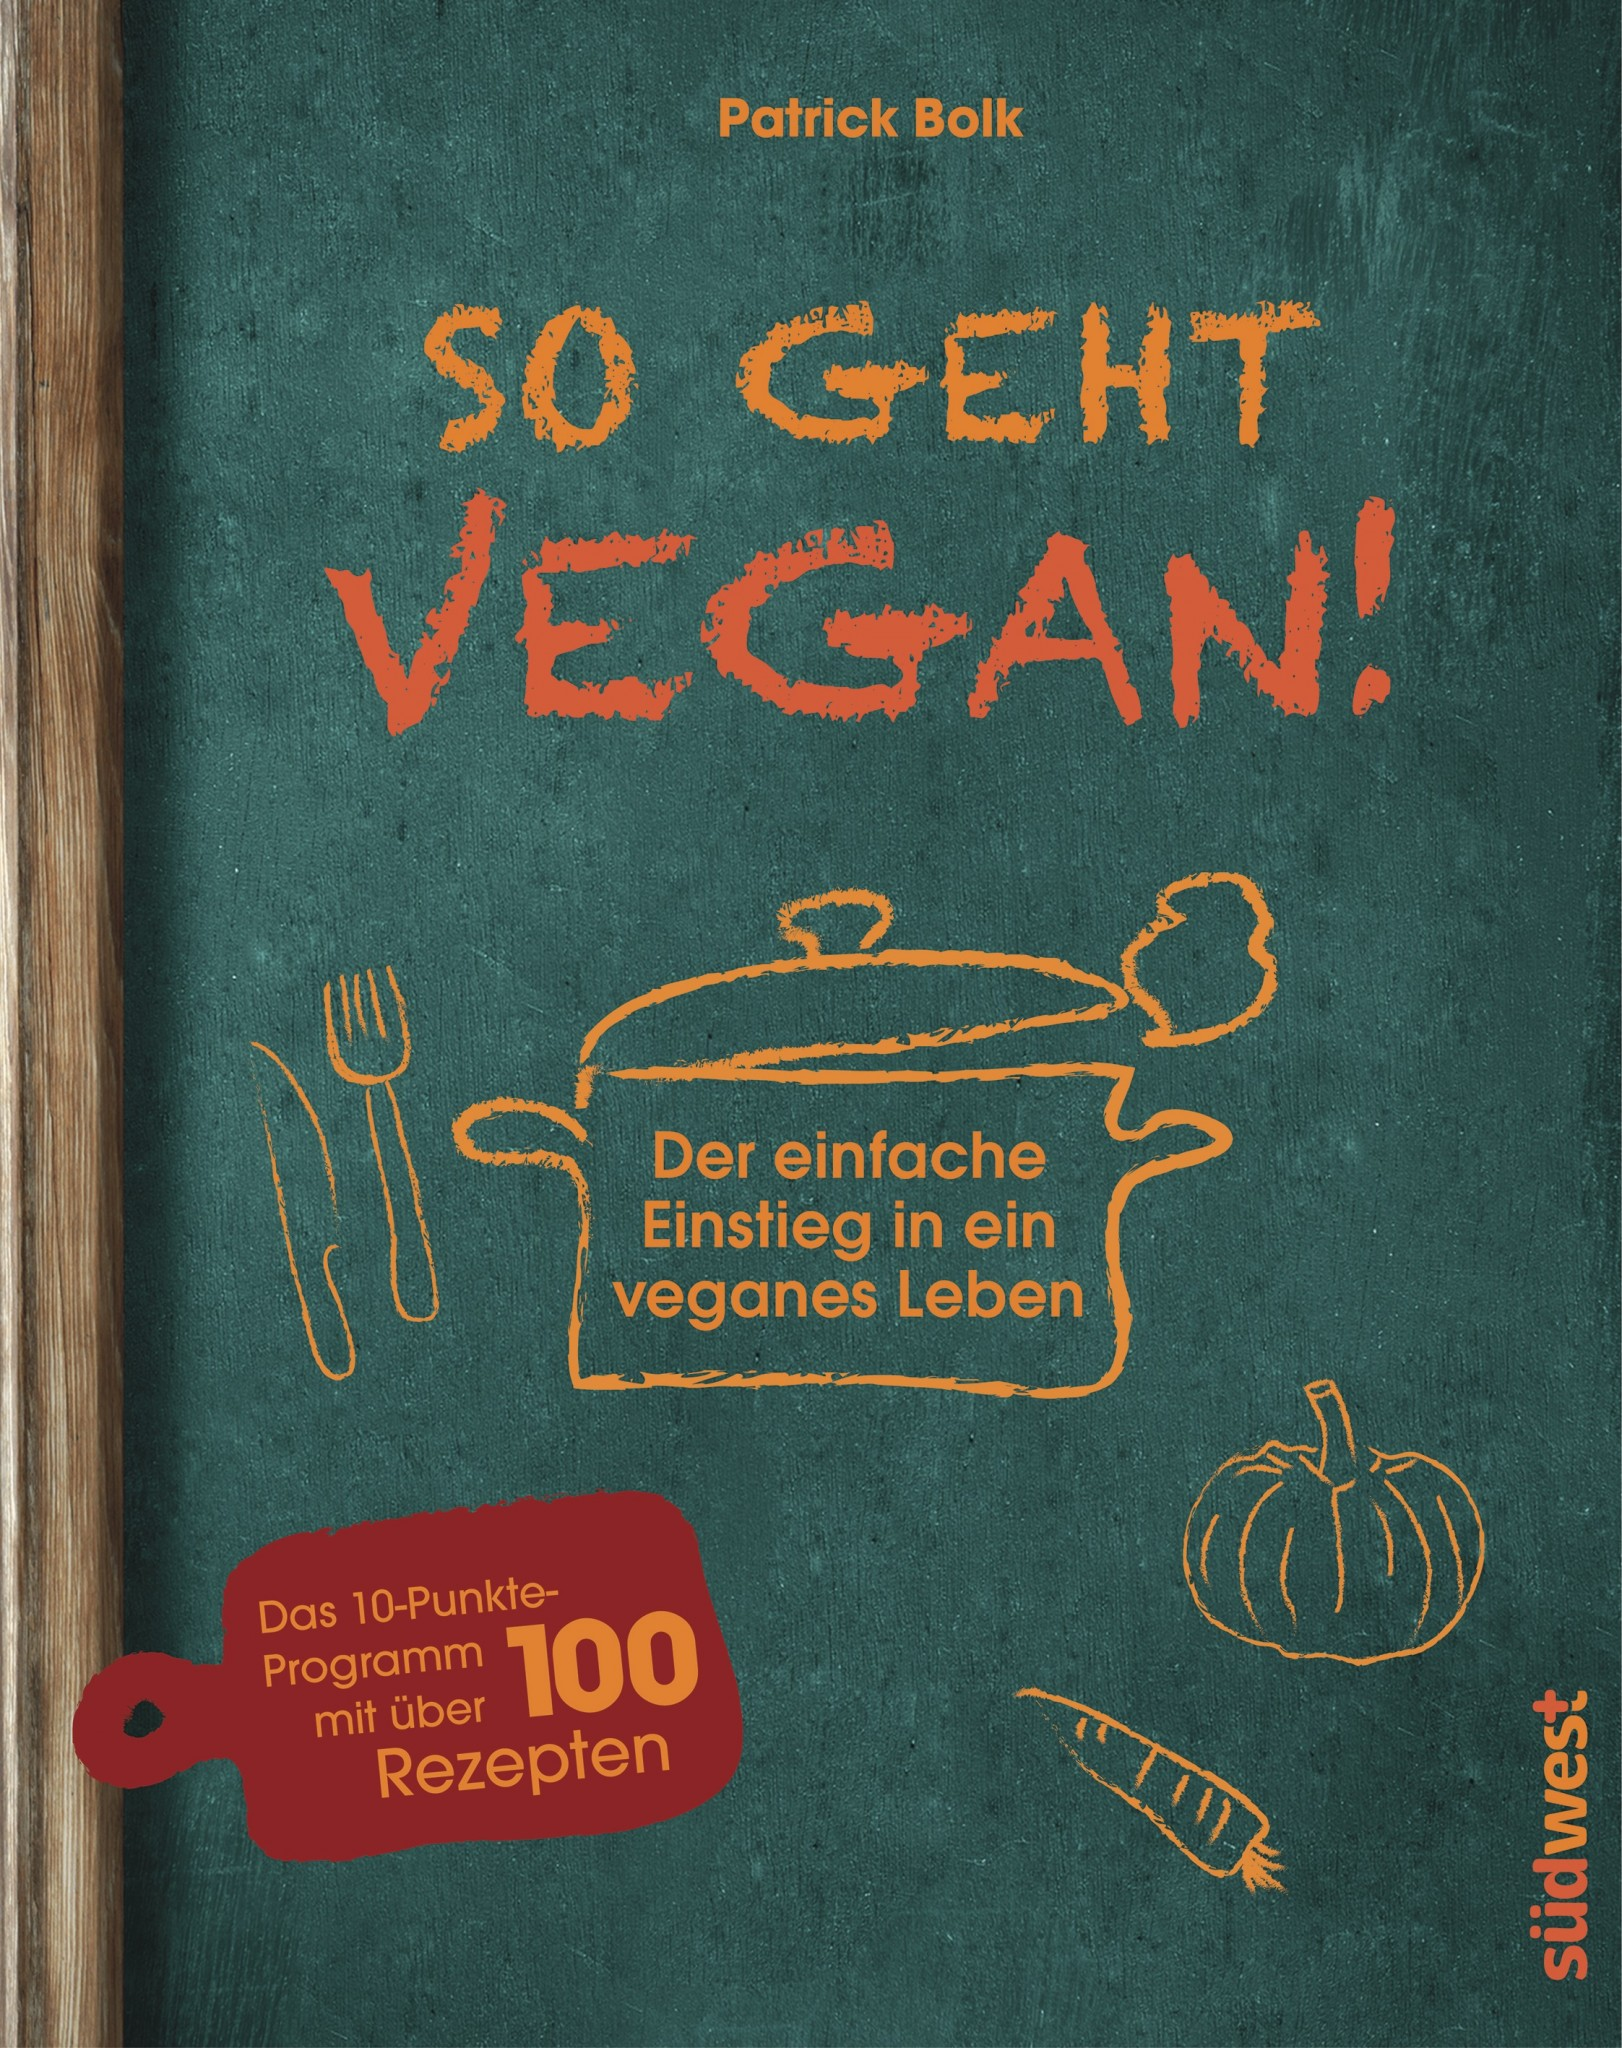 https://proveg.com/de/wp-content/uploads/sites/5/2018/10/Bolk_PSo_geht_vegan_147047.jpg